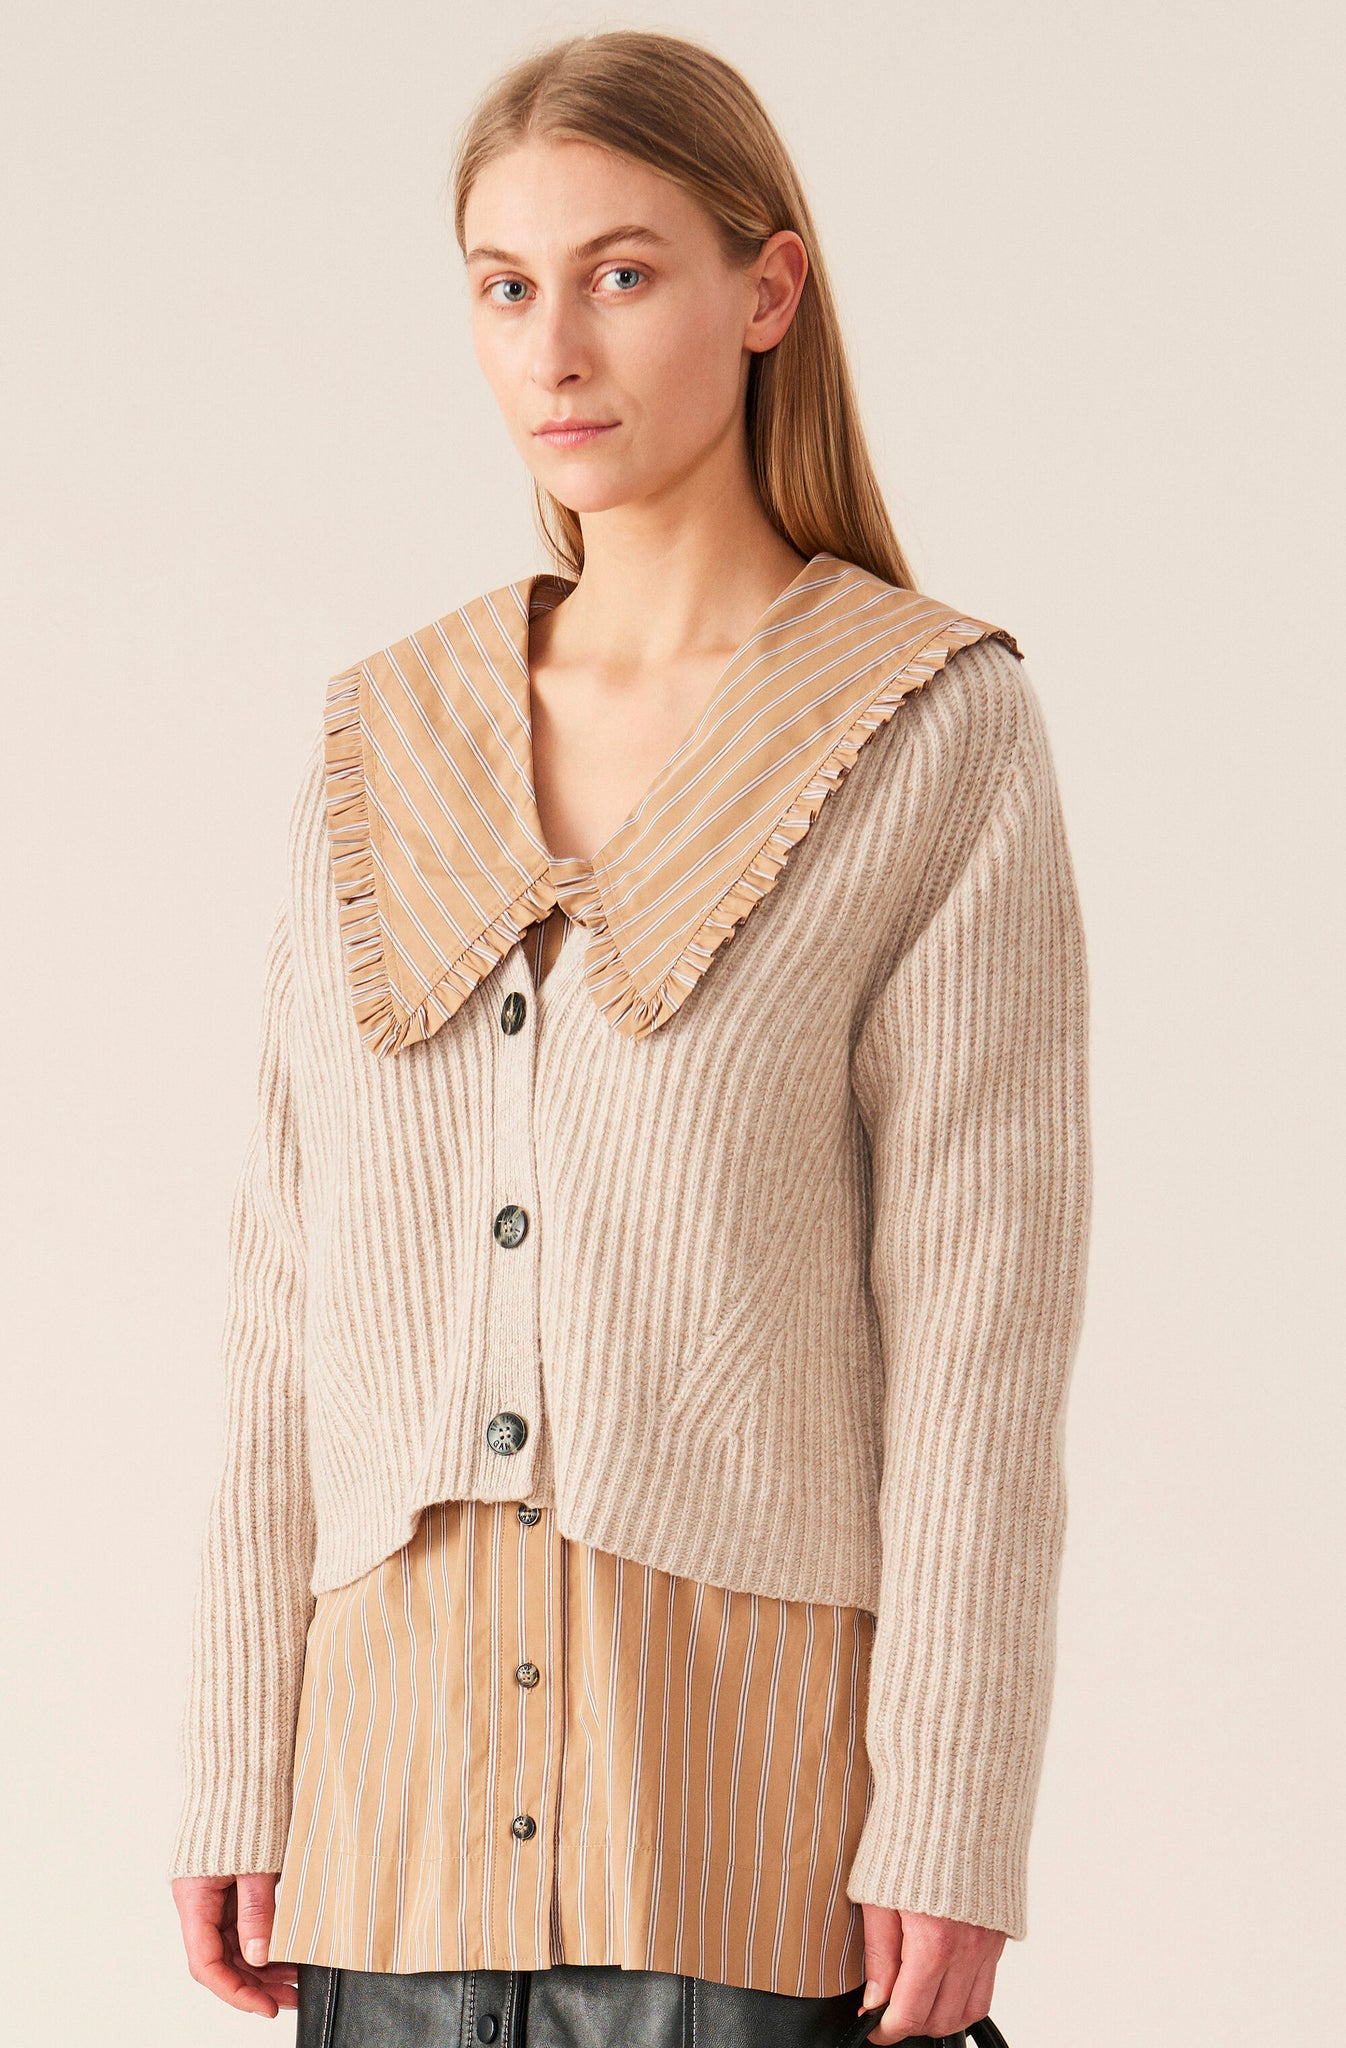 Rib Knit Cardigan in Brazillian Sand